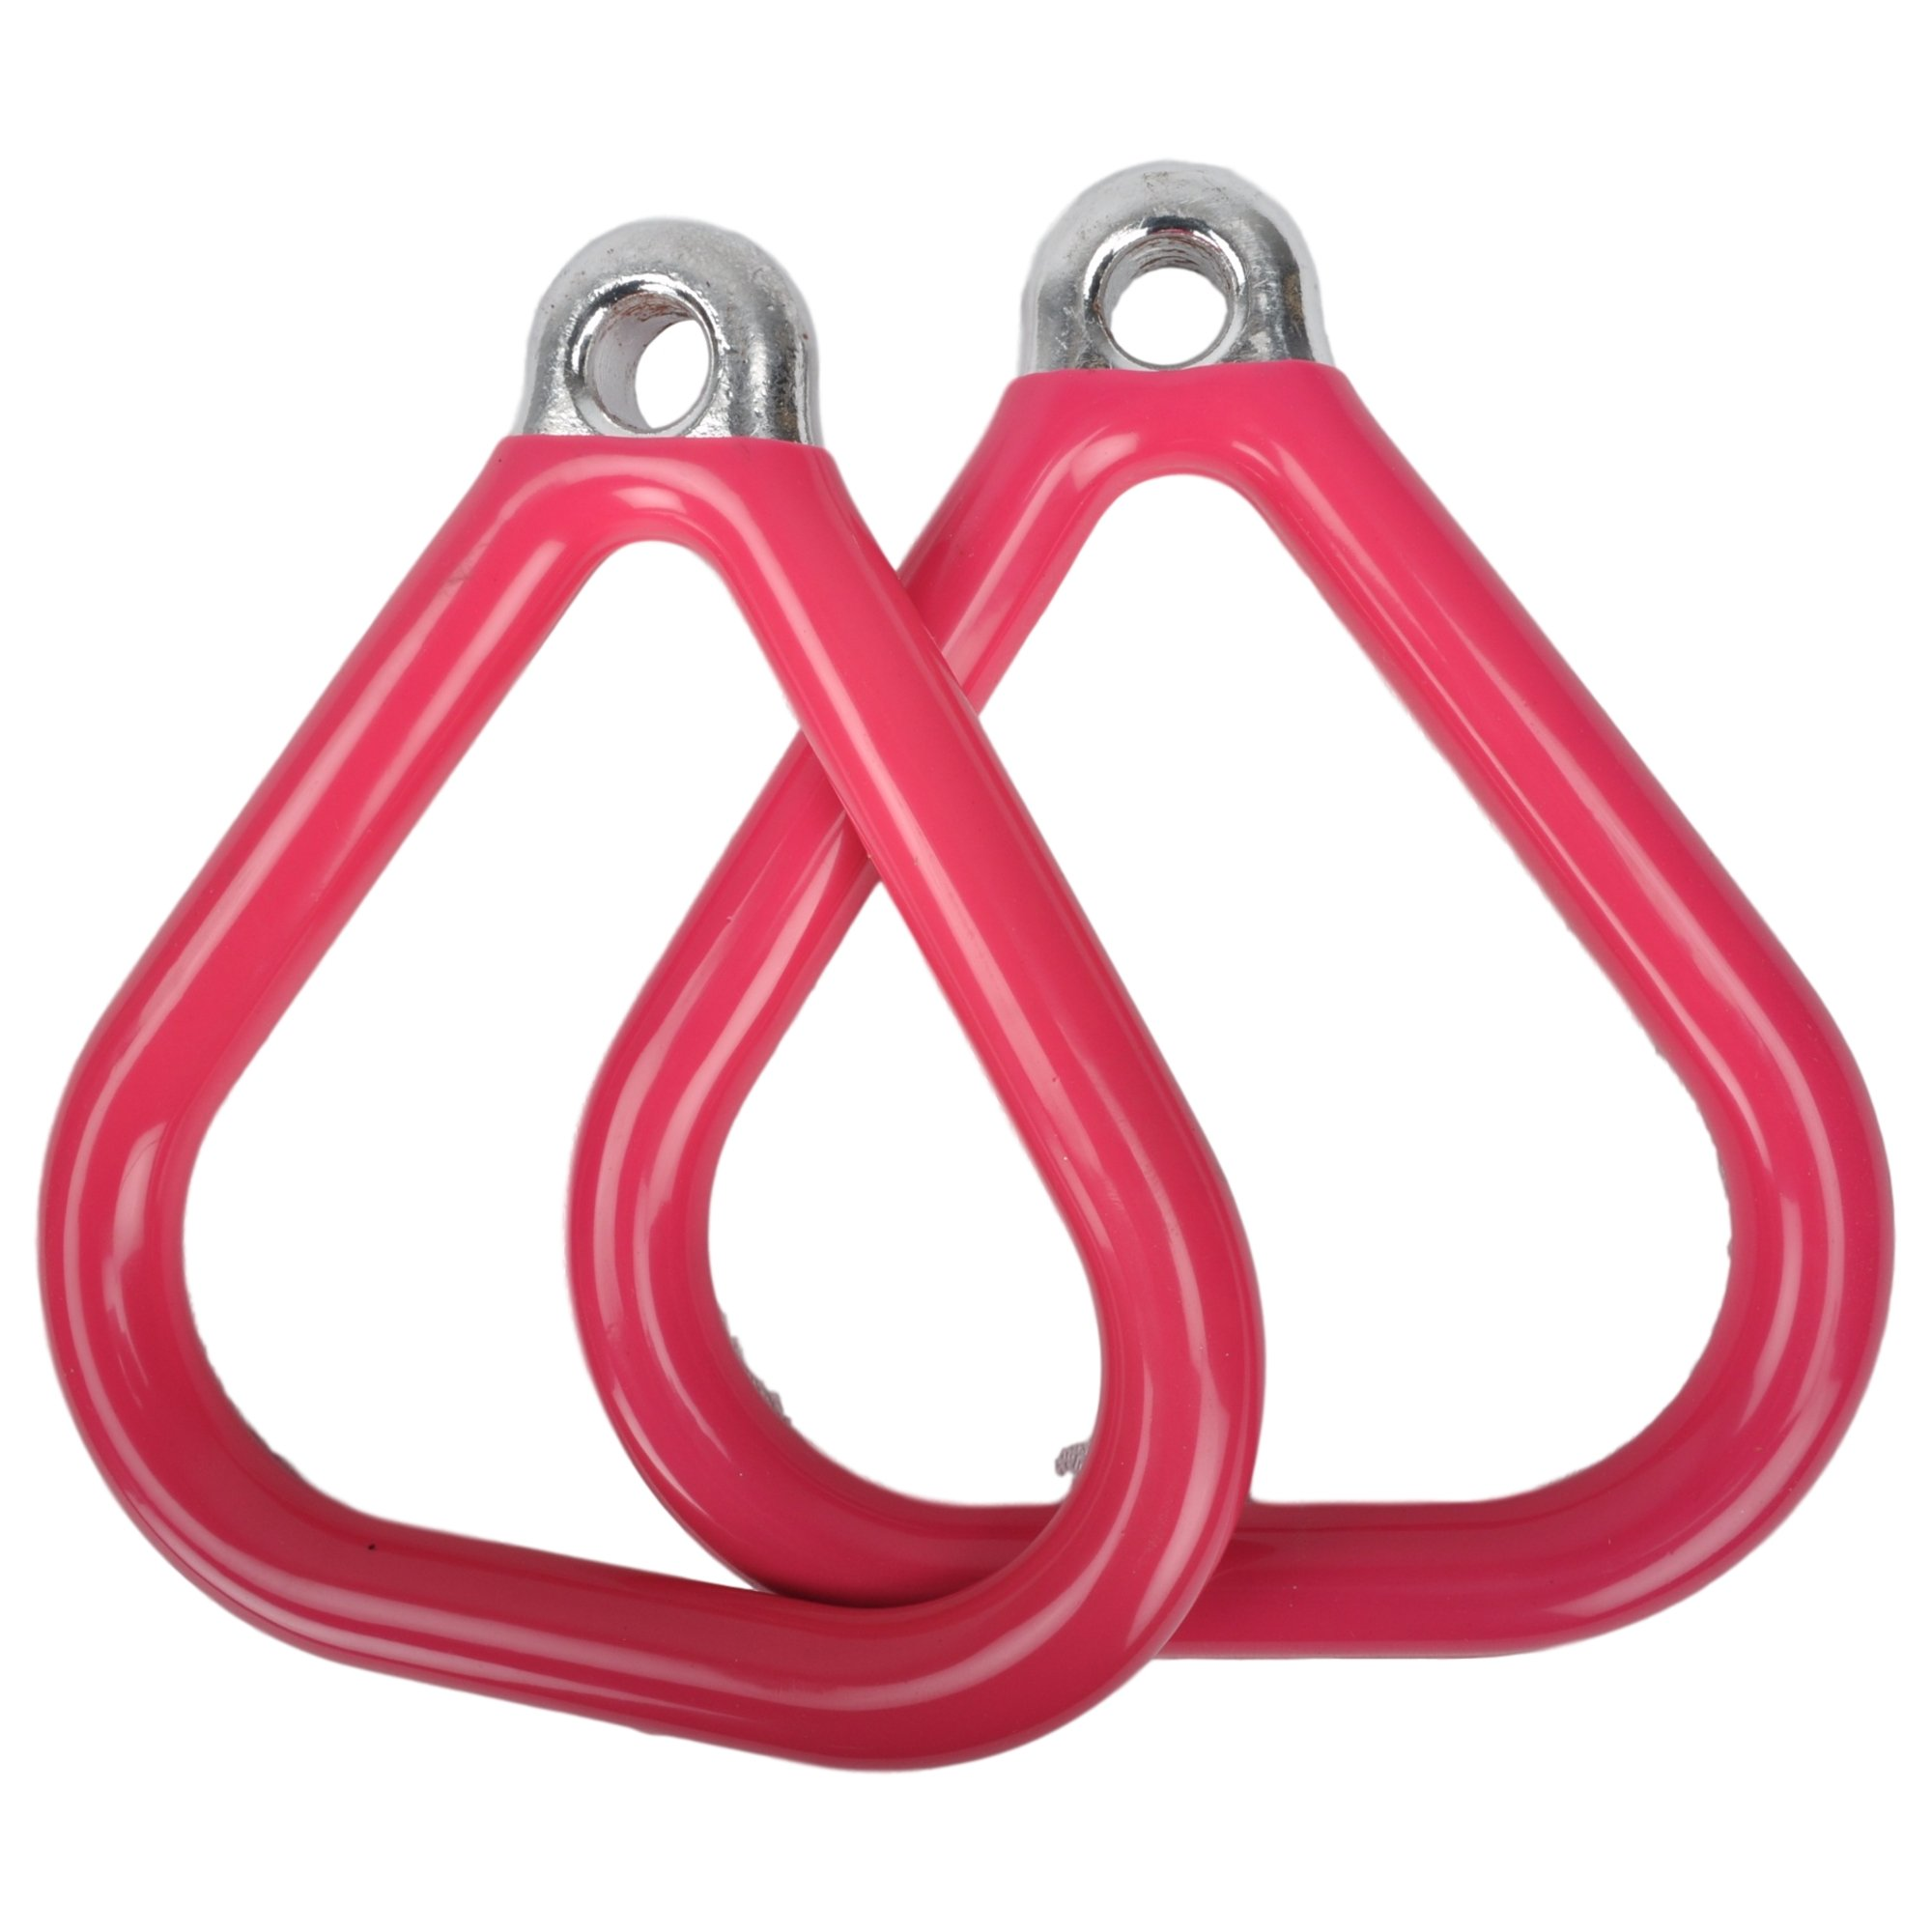 Swing Set Stuff Inc. Commercial Triangle Trapeze Rings with SSS Logo Sticker Playground Attachment, Pink by Swing Set Stuff Inc.